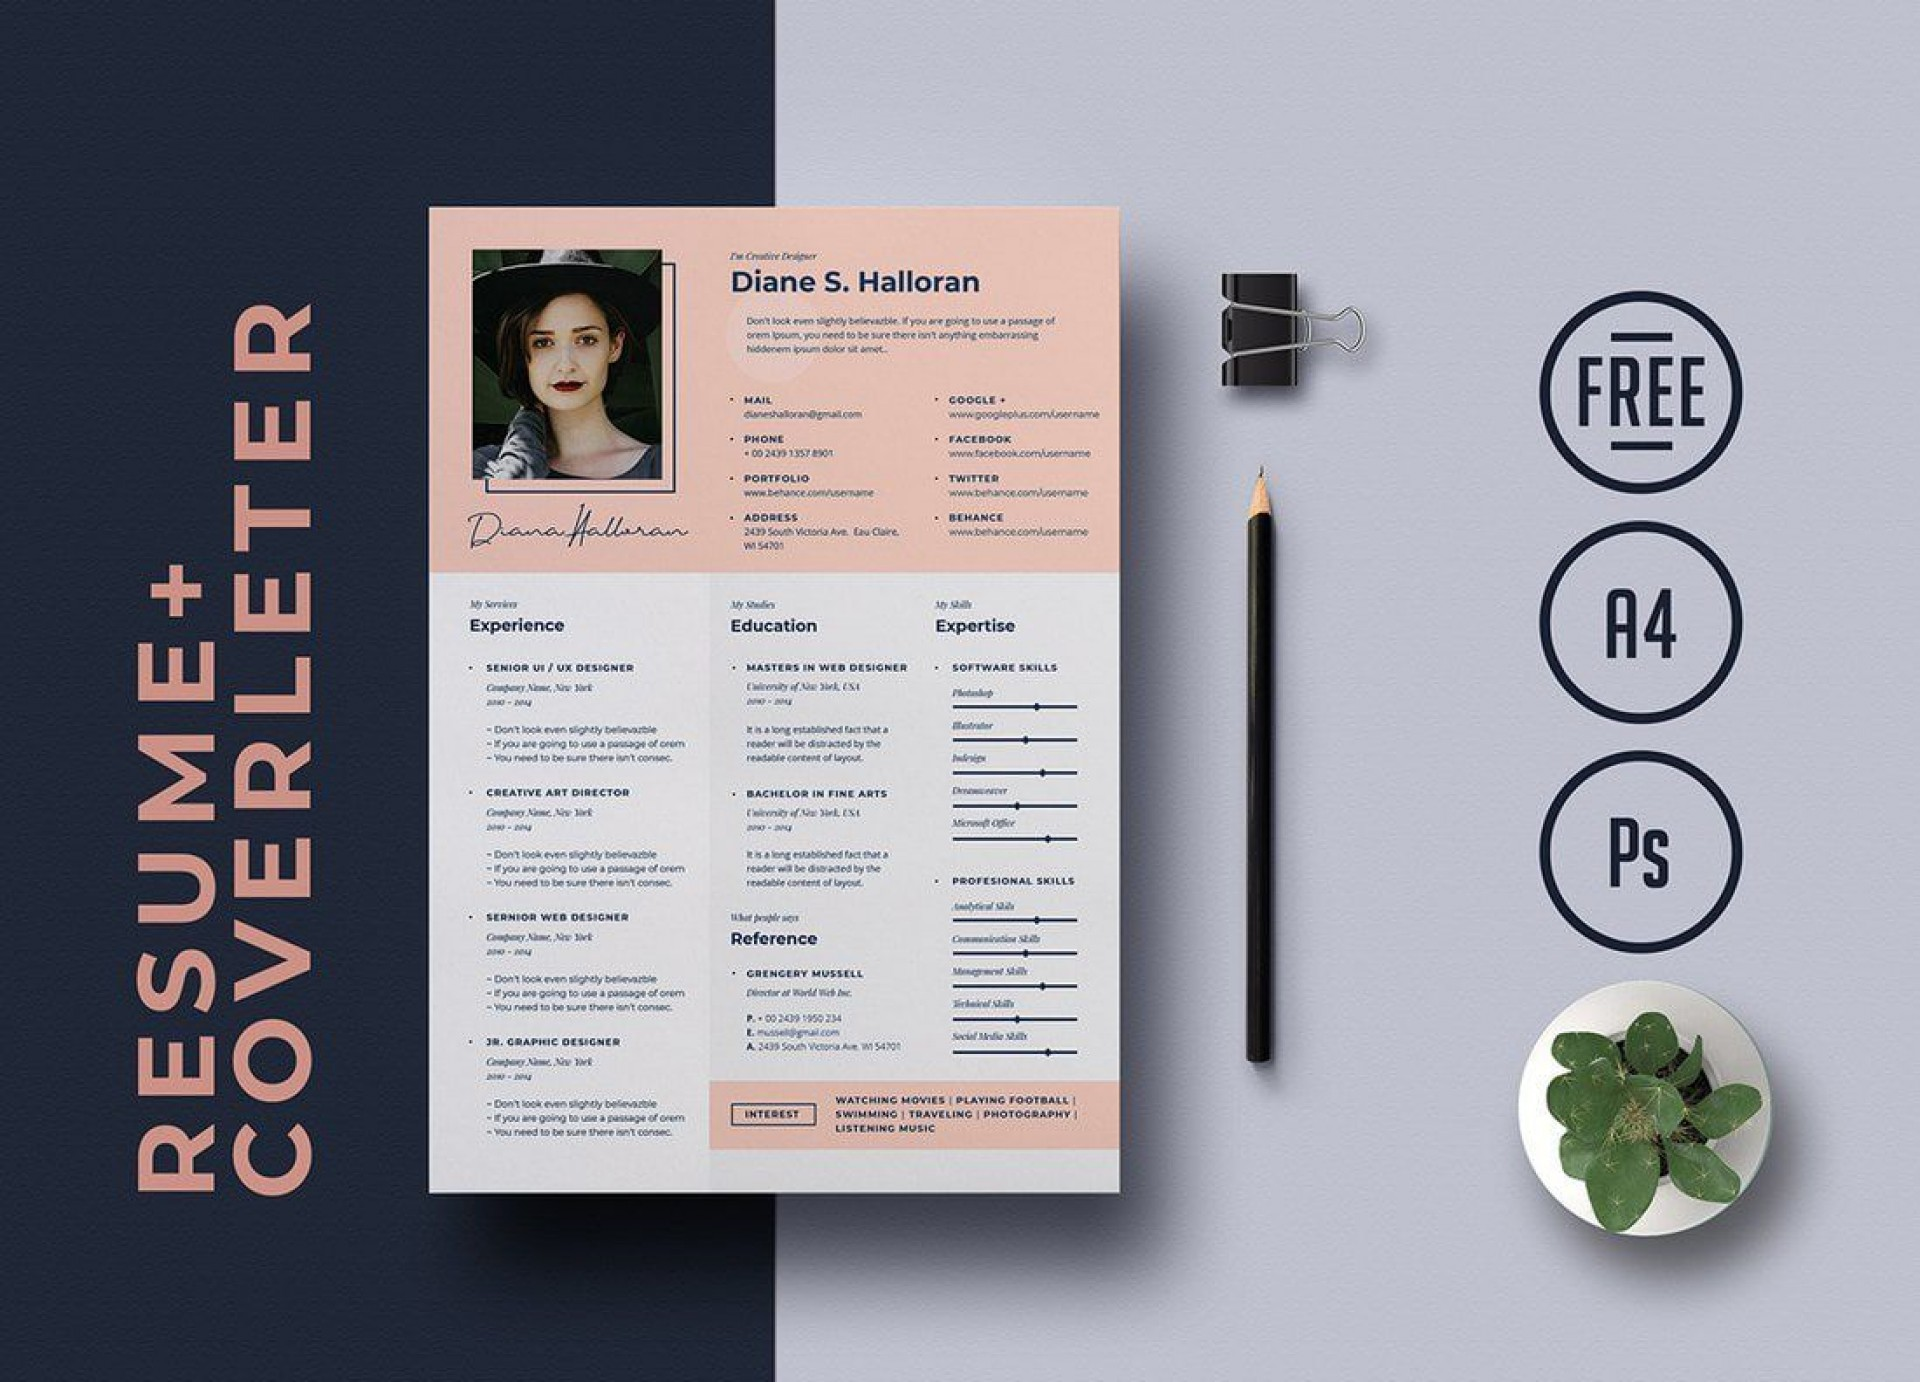 006 Fascinating Best Free Resume Template 2020 High Definition  Word Review1920